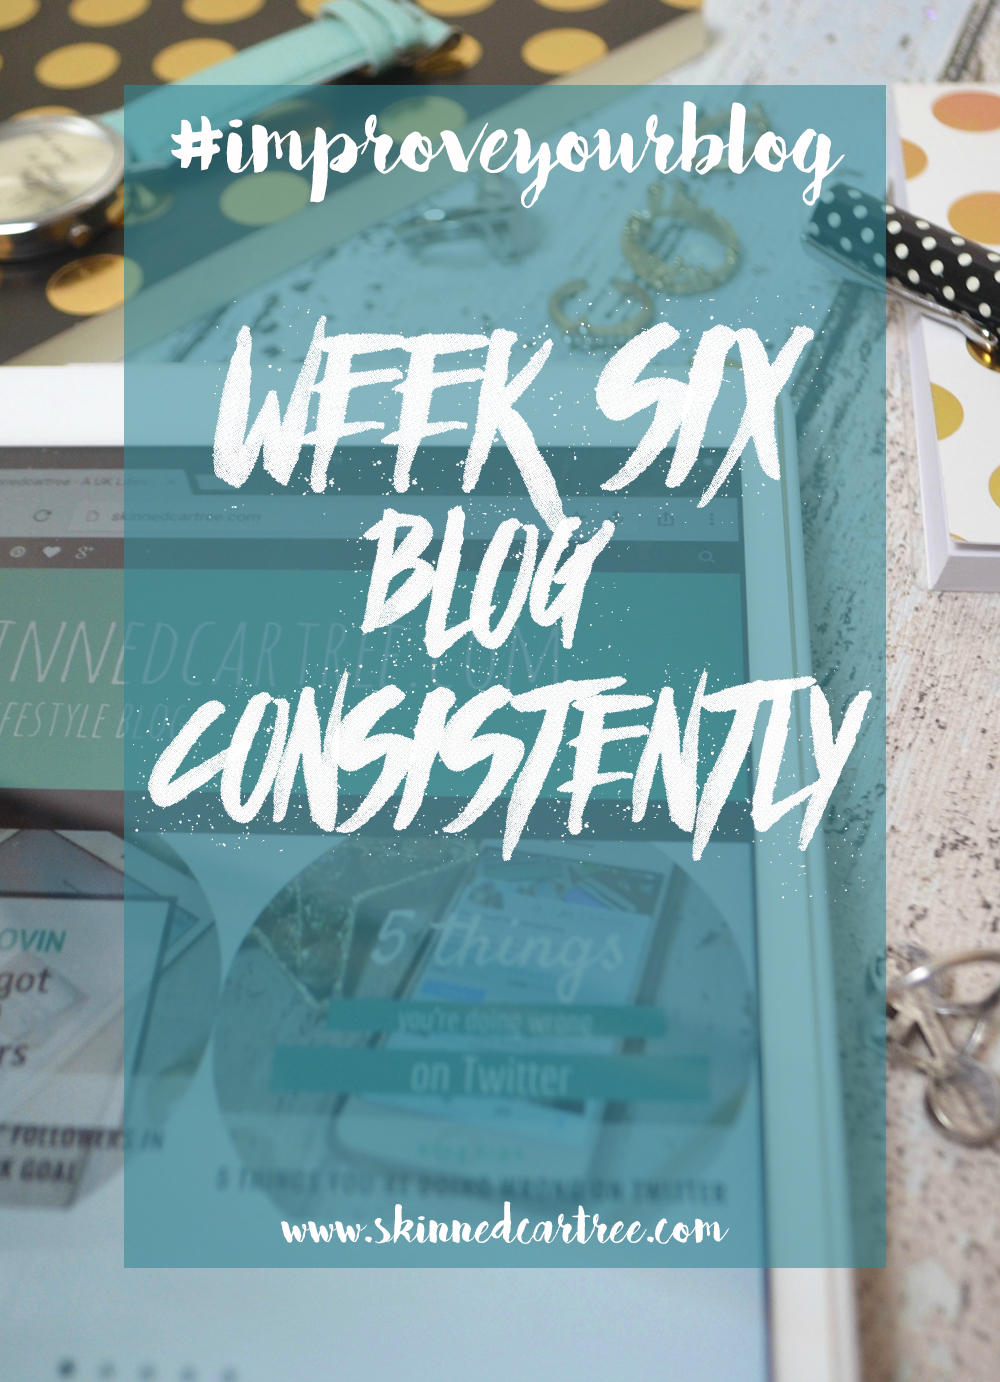 How to blog consistently and stick to a blog schedule #improveyourblog